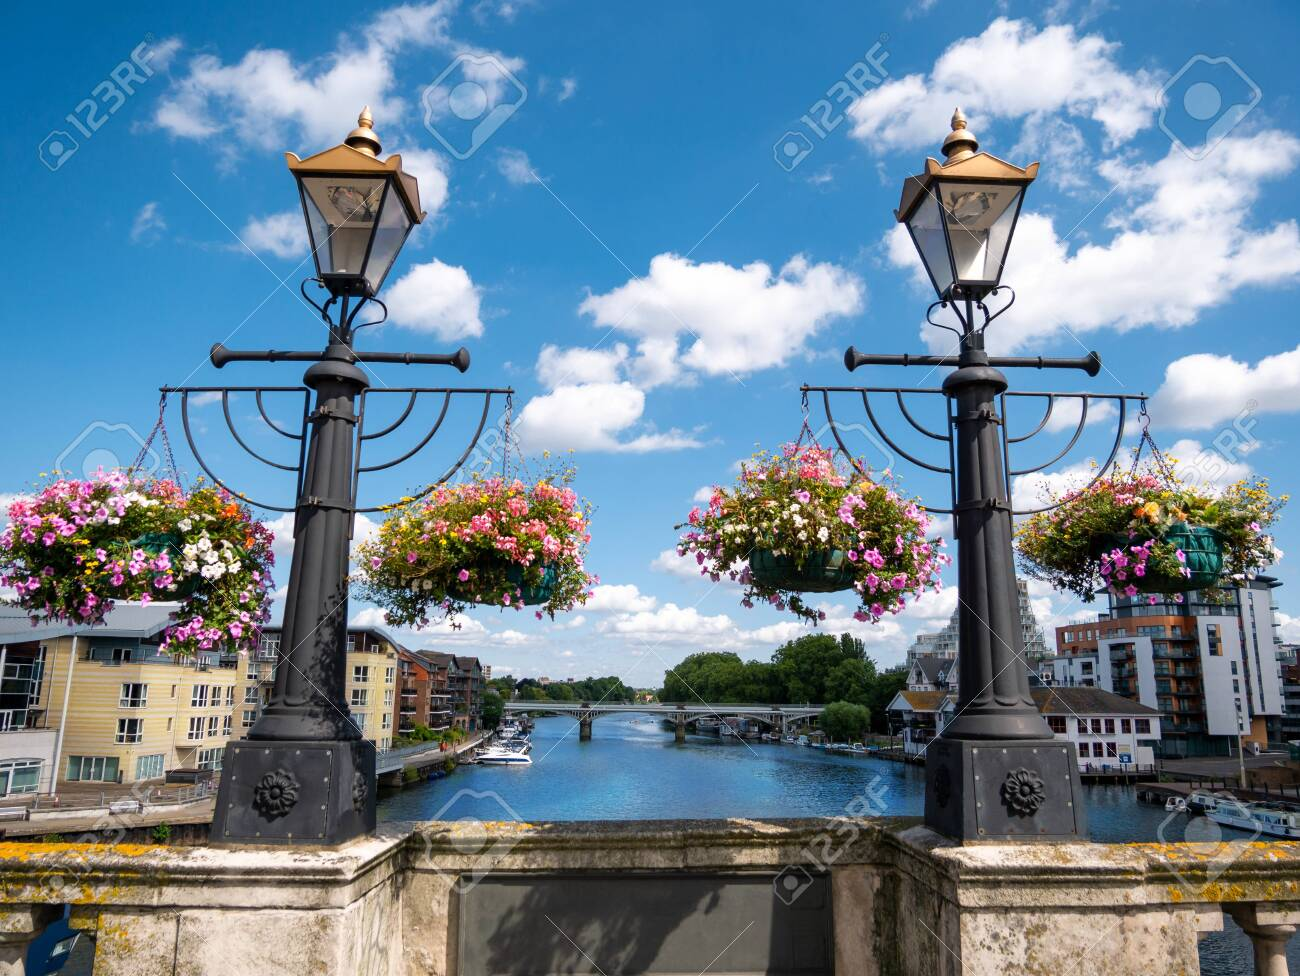 Ornamental flowers and medieval lamps on the wall of Kingston bridge in a sunny day - 133078351